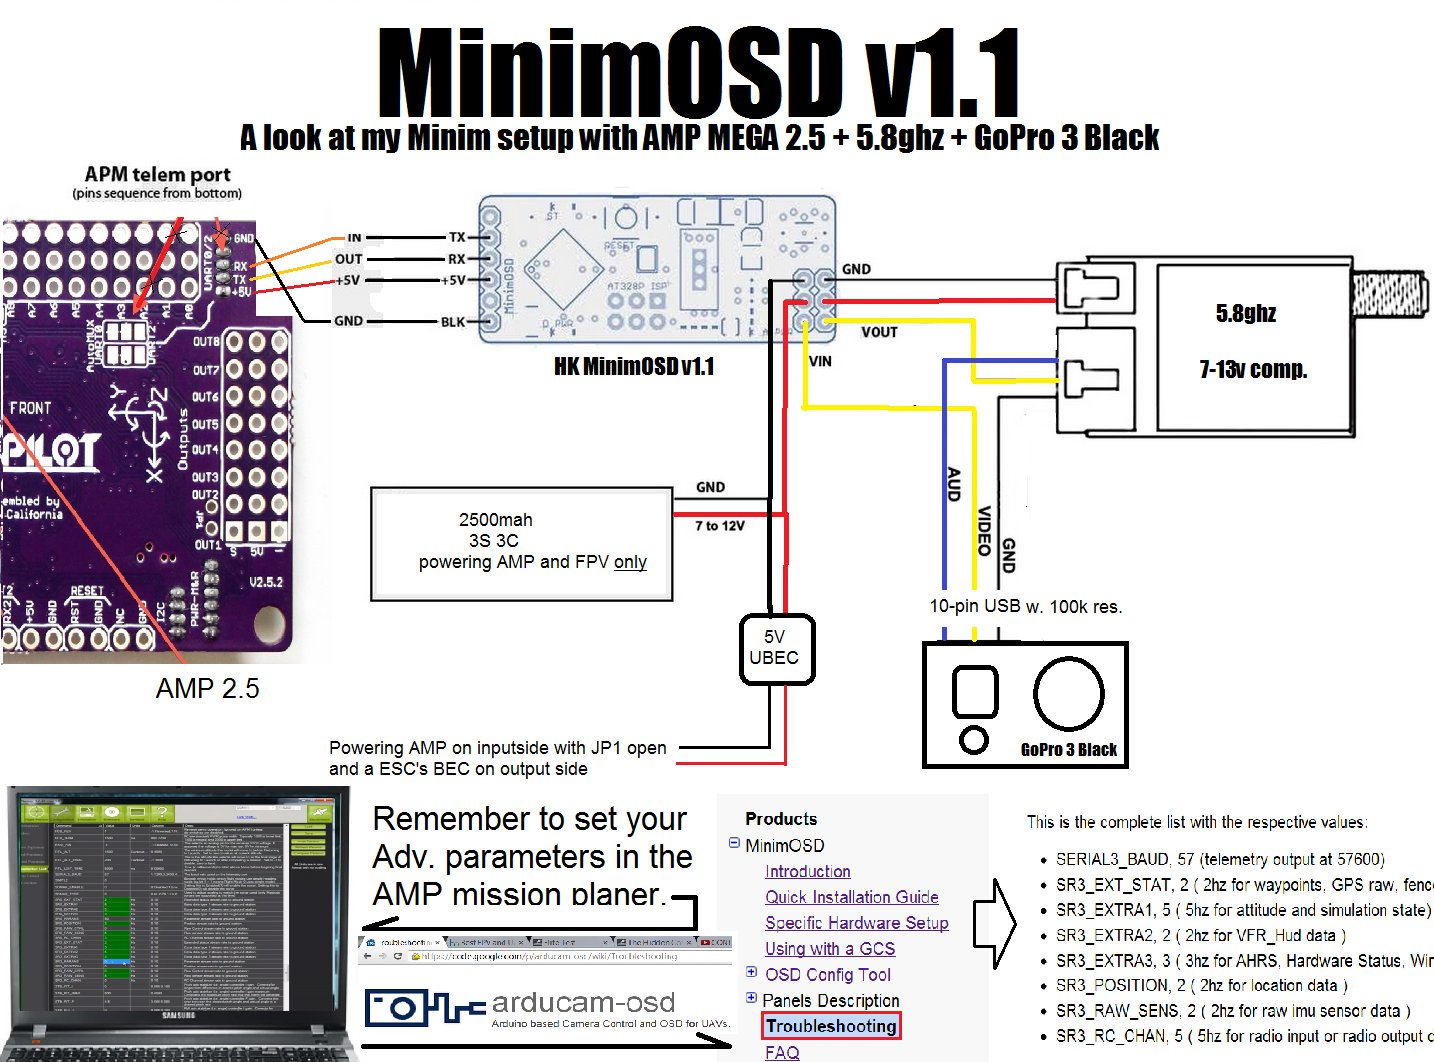 minimosd v1 1 png_1373926583 apm 2 5 minimosd v1 1 how to setup w gopro 3 b flite test 3Dr APM 2.6 Wiring-Diagram at eliteediting.co